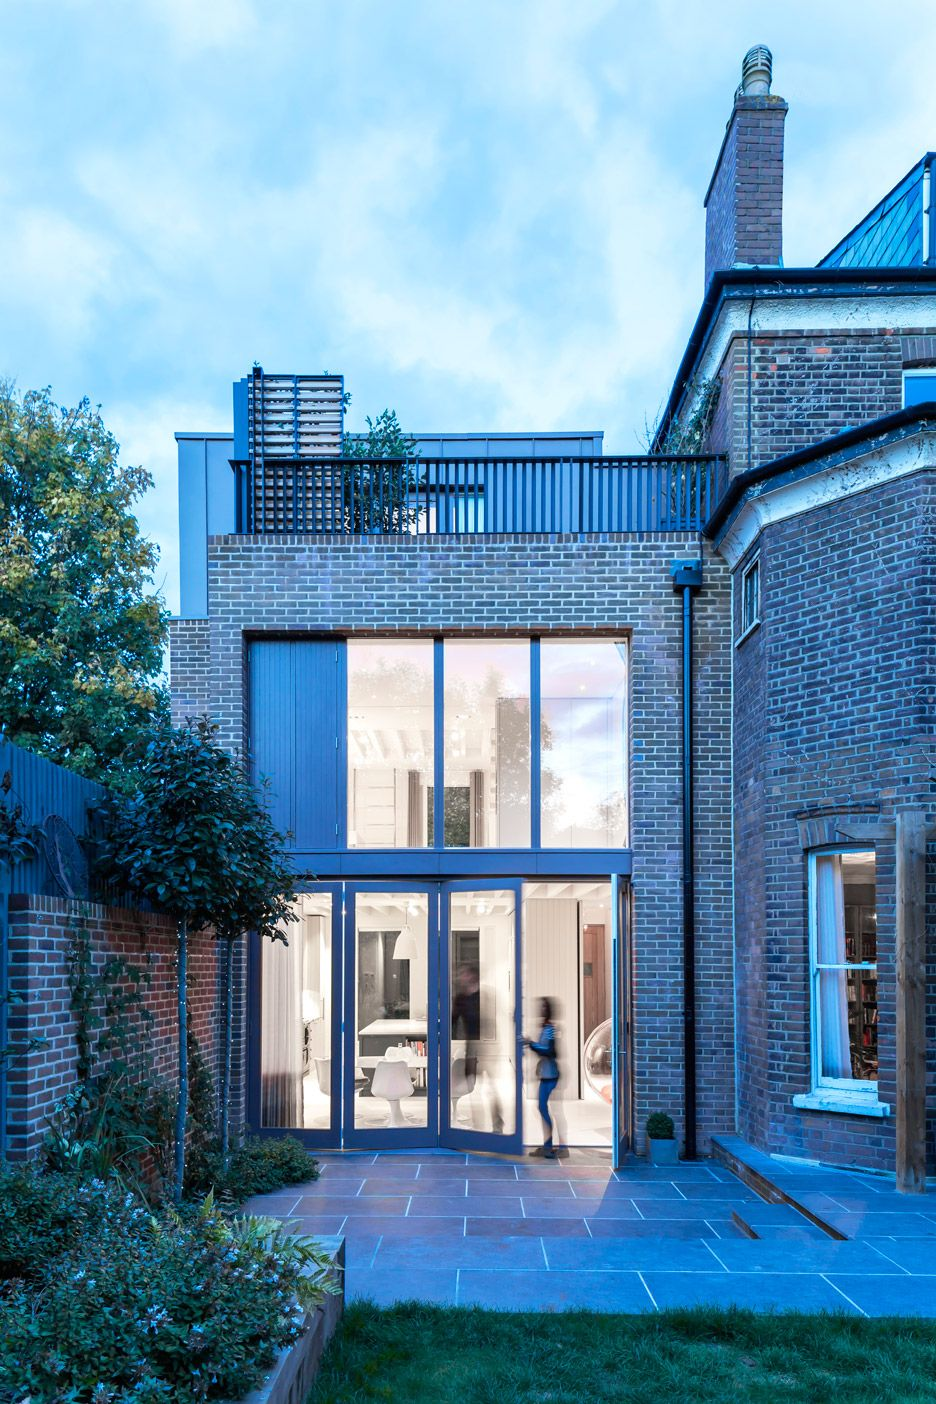 London House Extension By Alexander Martin Features A Double Height Window Wall With Images Modern Brick House London House Architecture Exterior